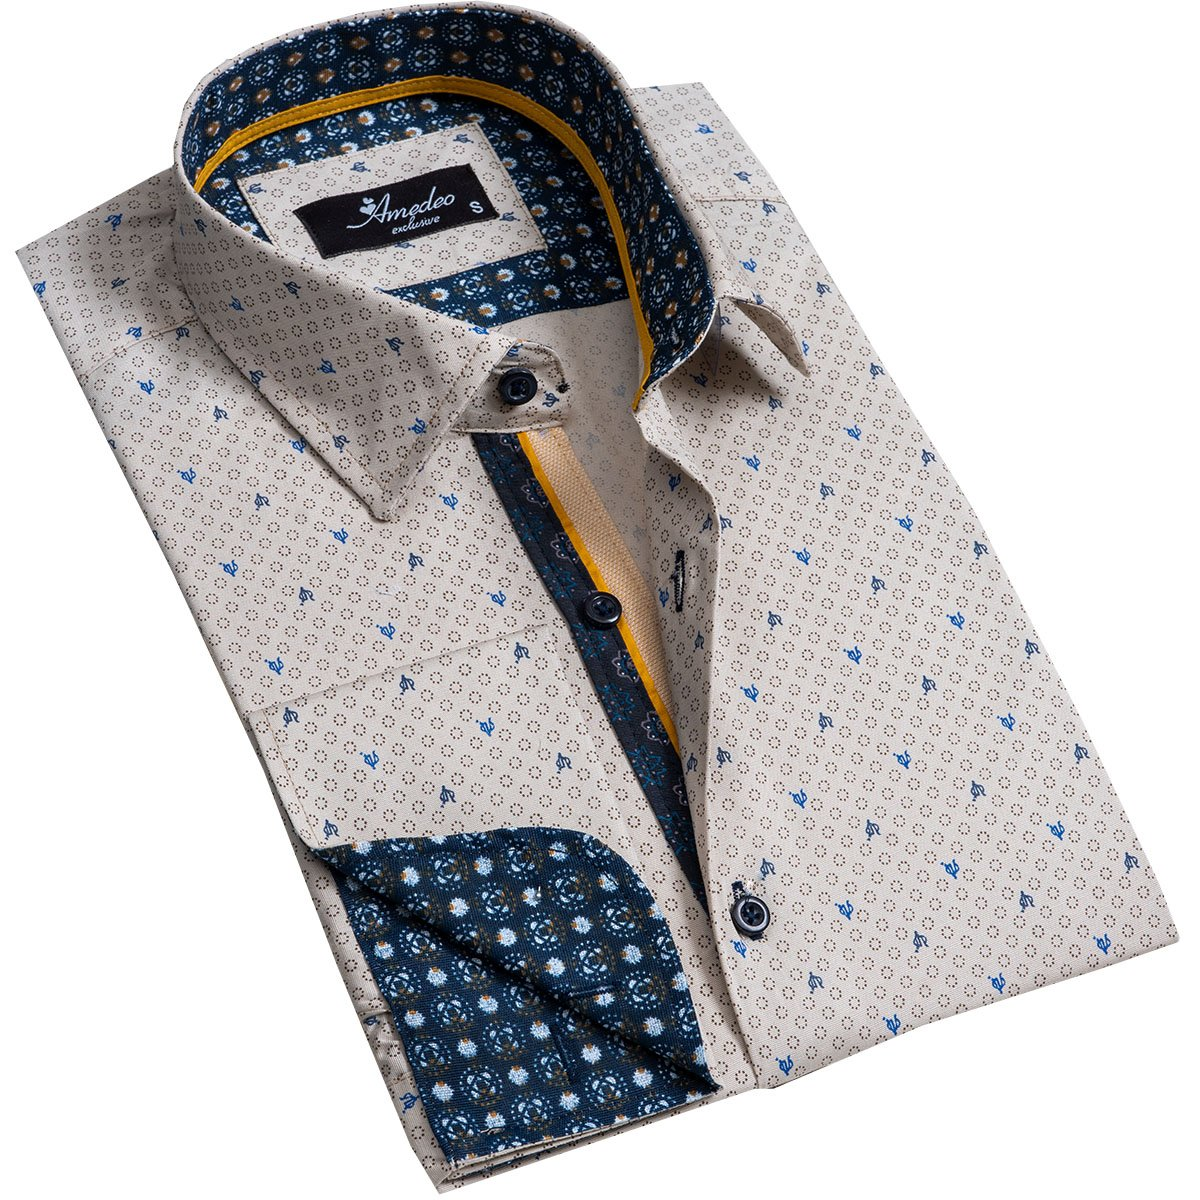 Beige Mens Slim Fit French Cuff Dress Shirts with Cufflink Holes - Casual and Formal - Amedeo Exclusive